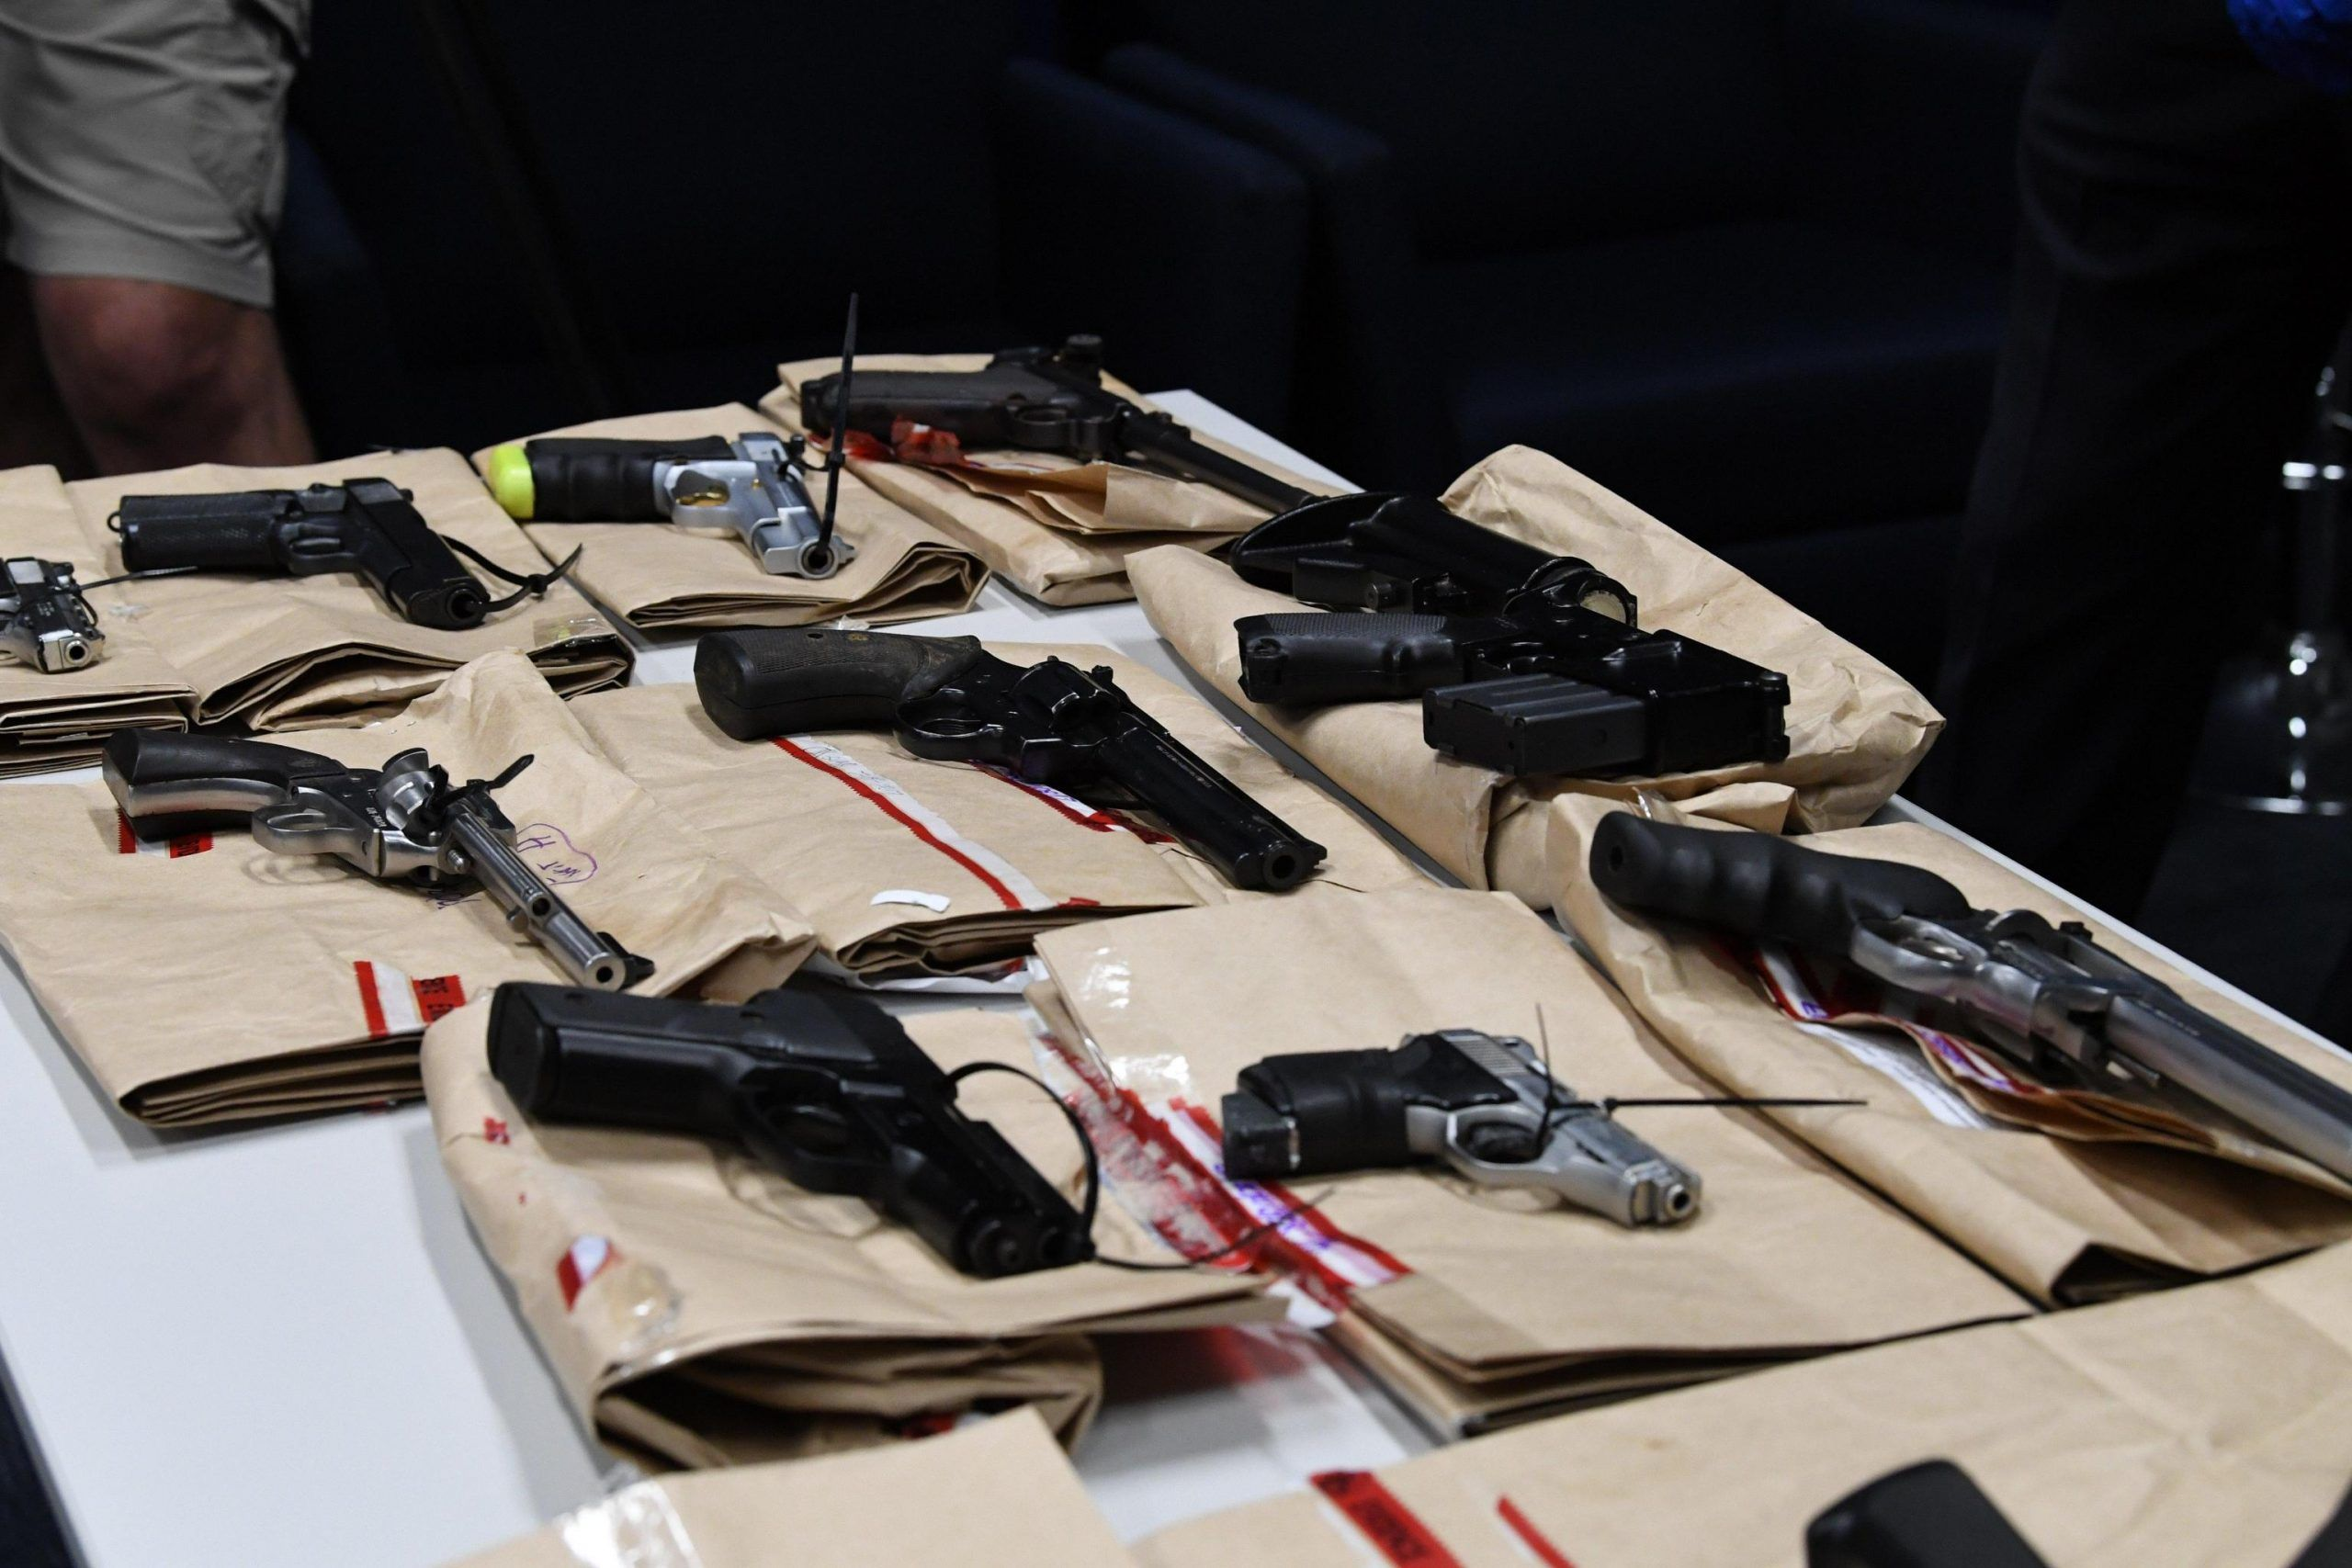 Police find large stash of weapons in Stanthorpe